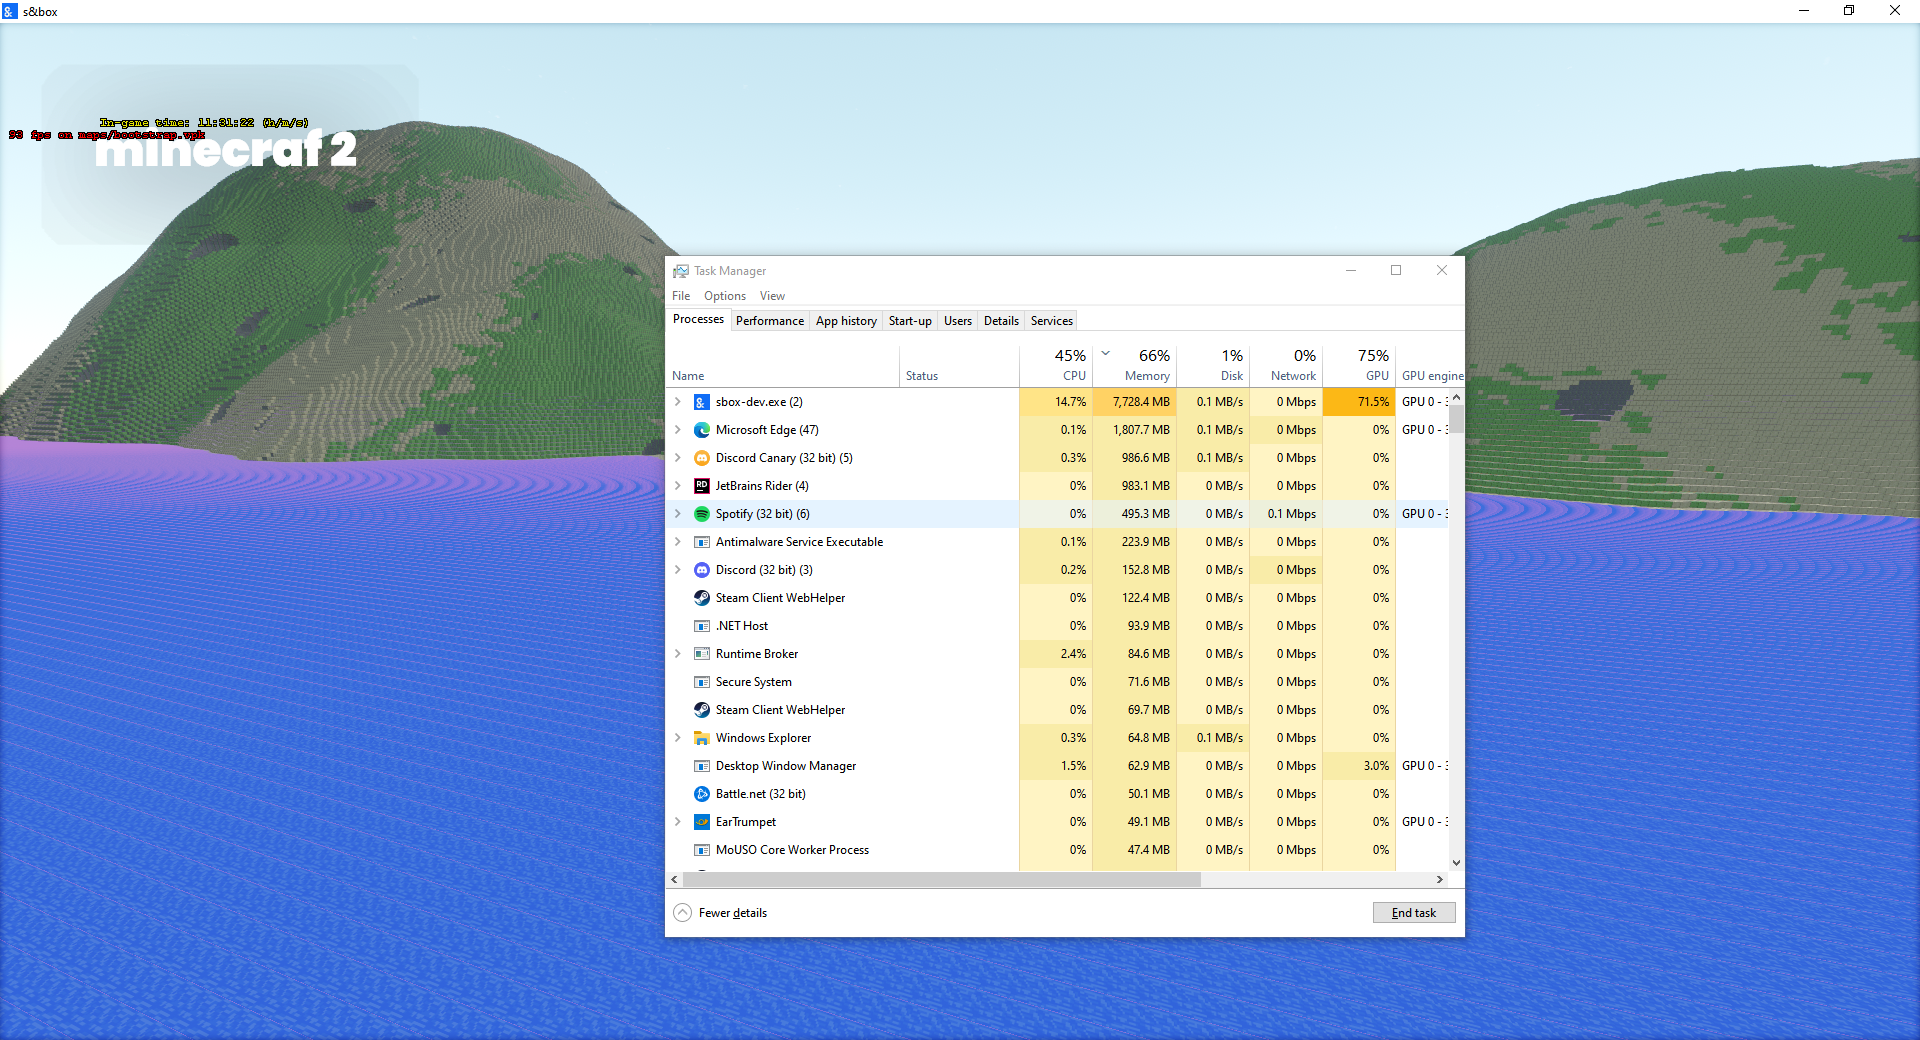 windows has bad memory management issues